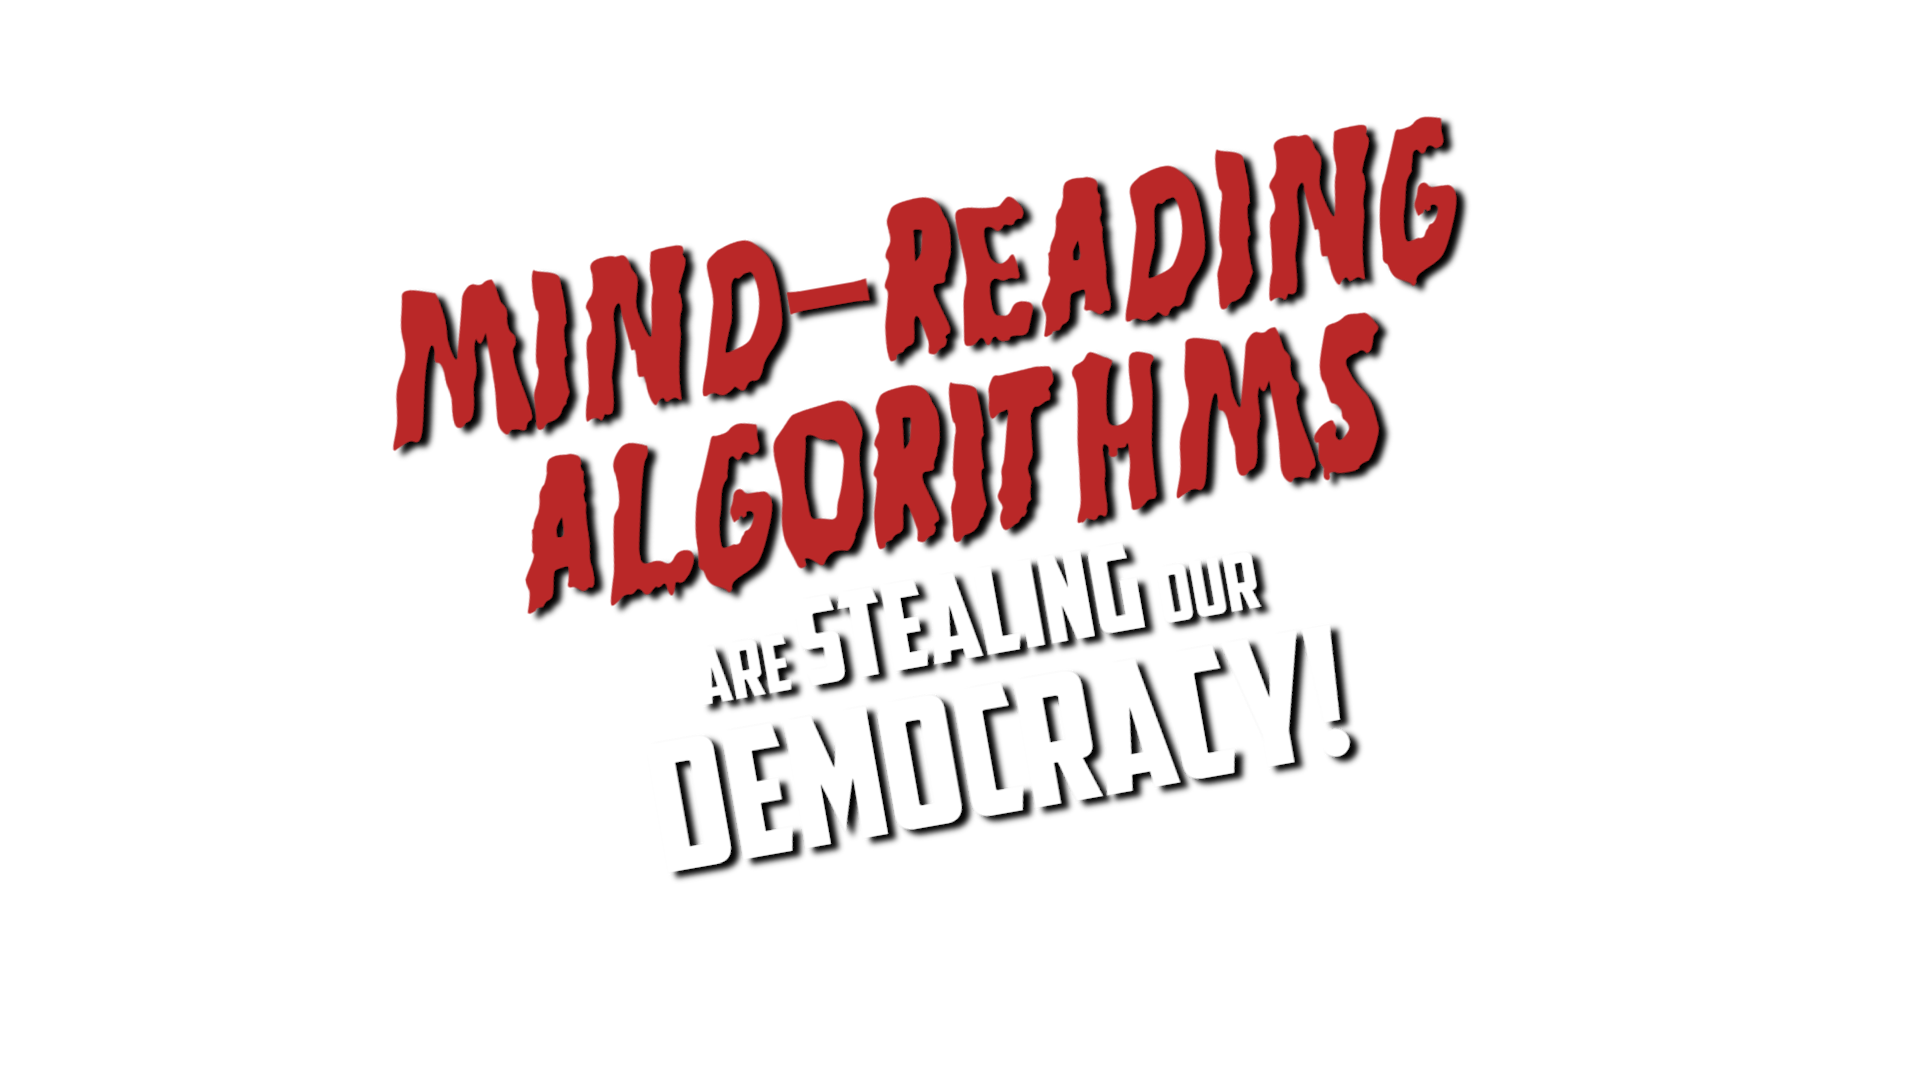 MIND-READING ALGORITHMS ARE STEALING OUR DEMOCRACY!